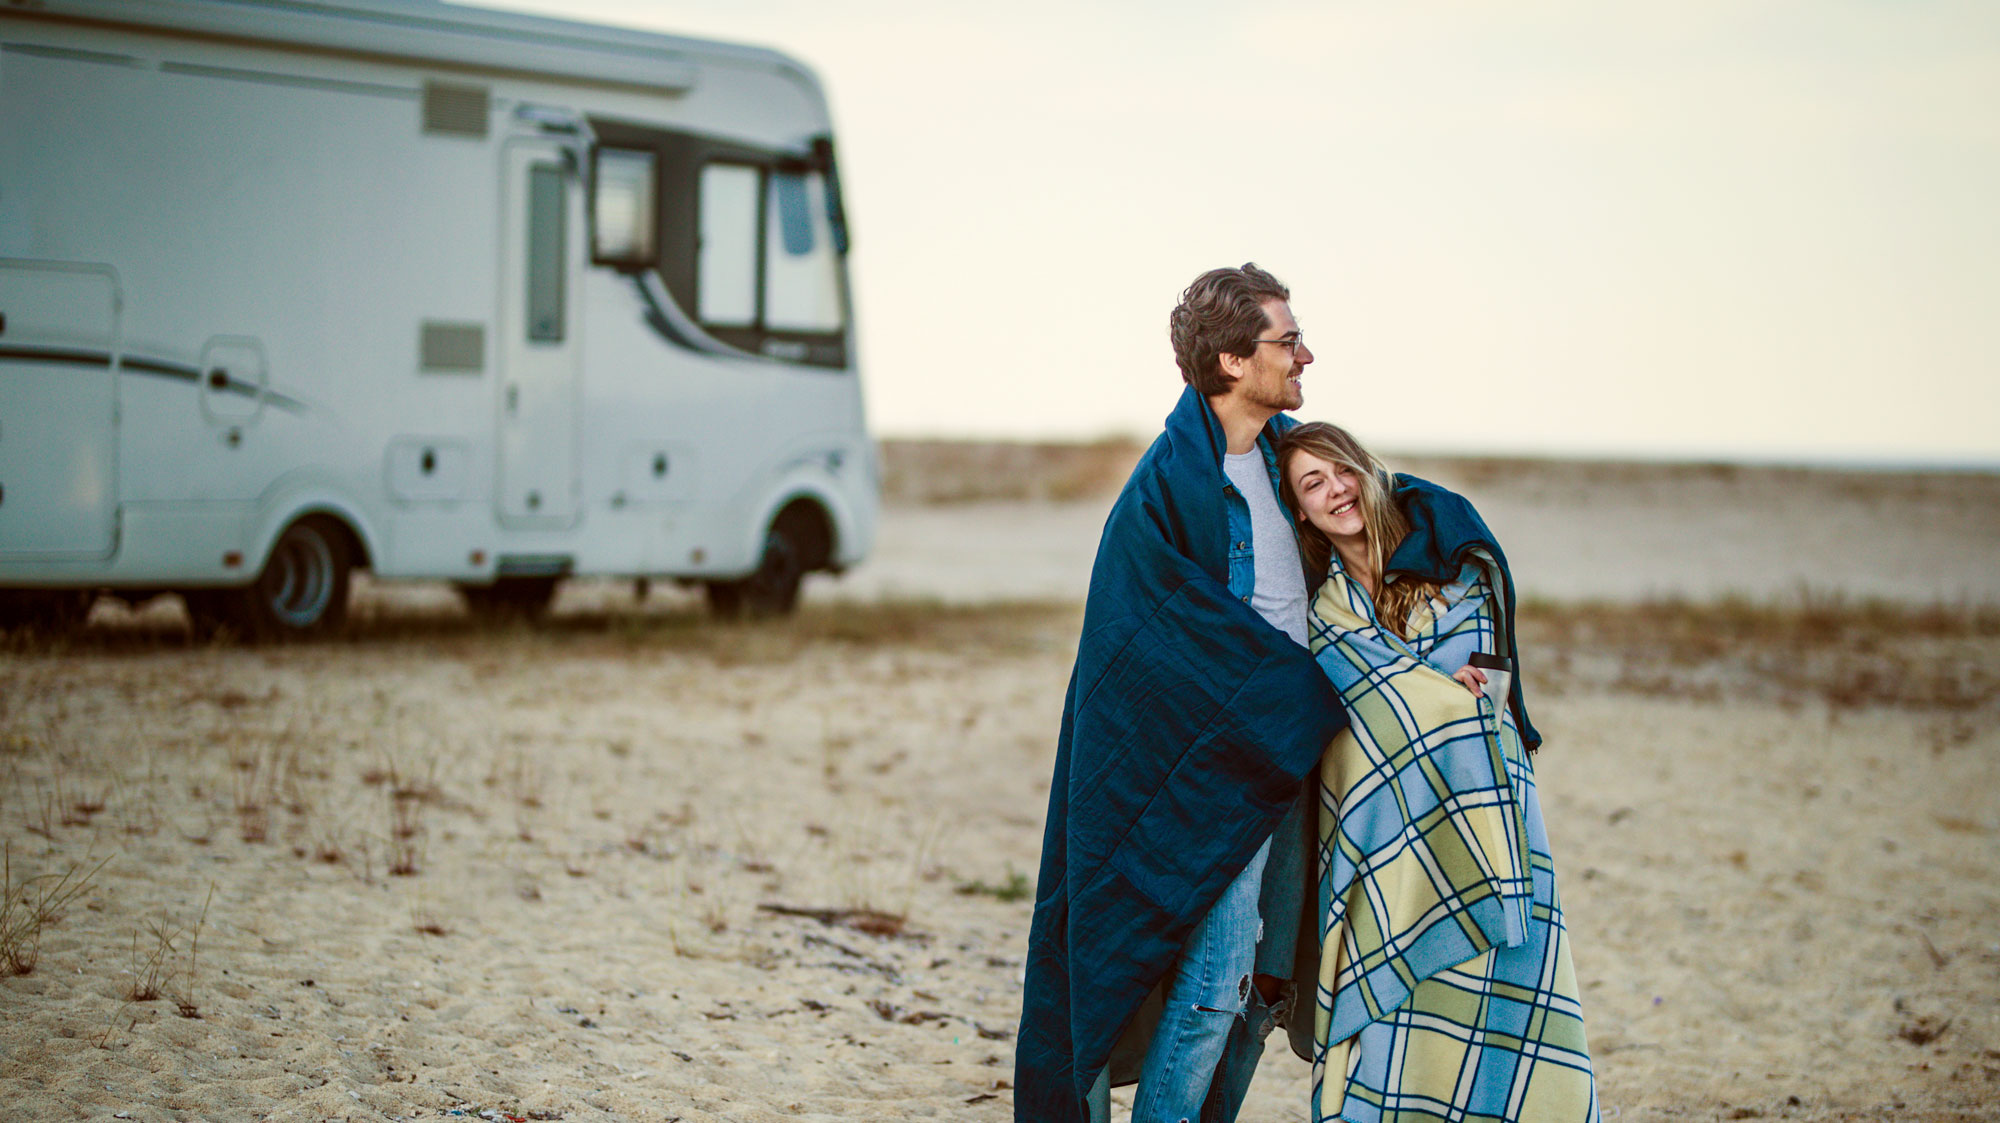 man and woman wrapped in blankets with RV in background